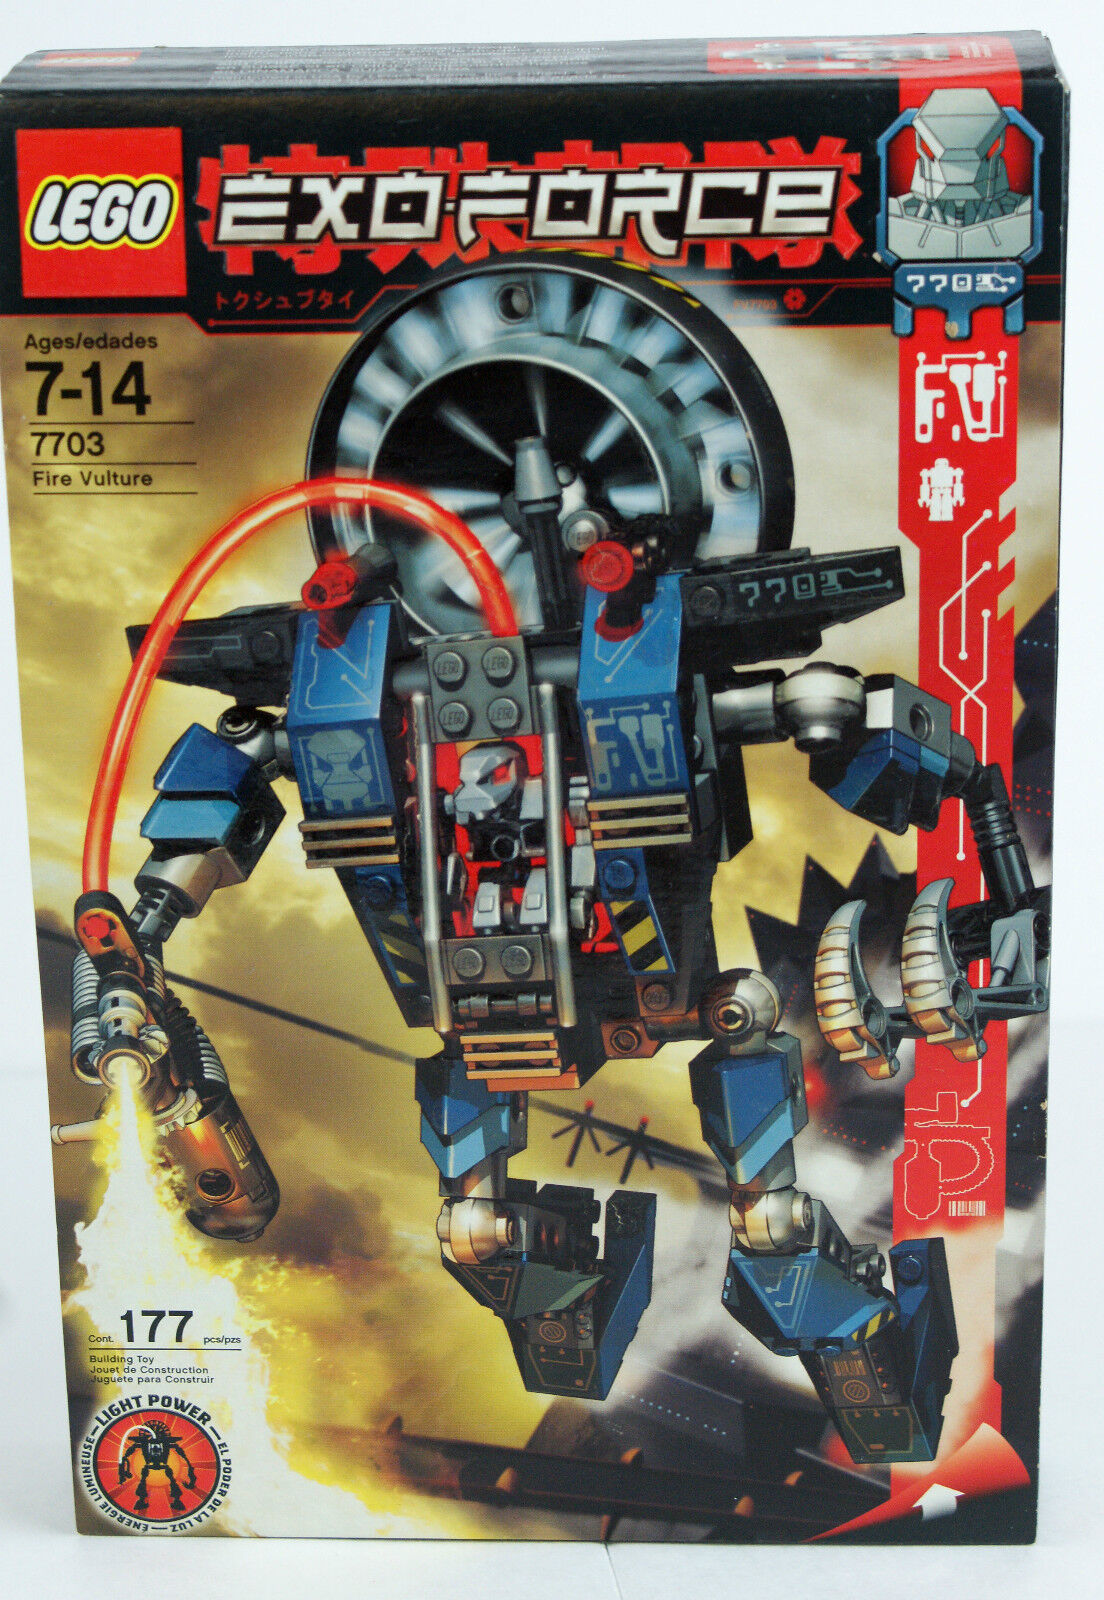 Lego 7703 Exo-Force Fire Vulture - Vintage 2006 Exo Force NEW